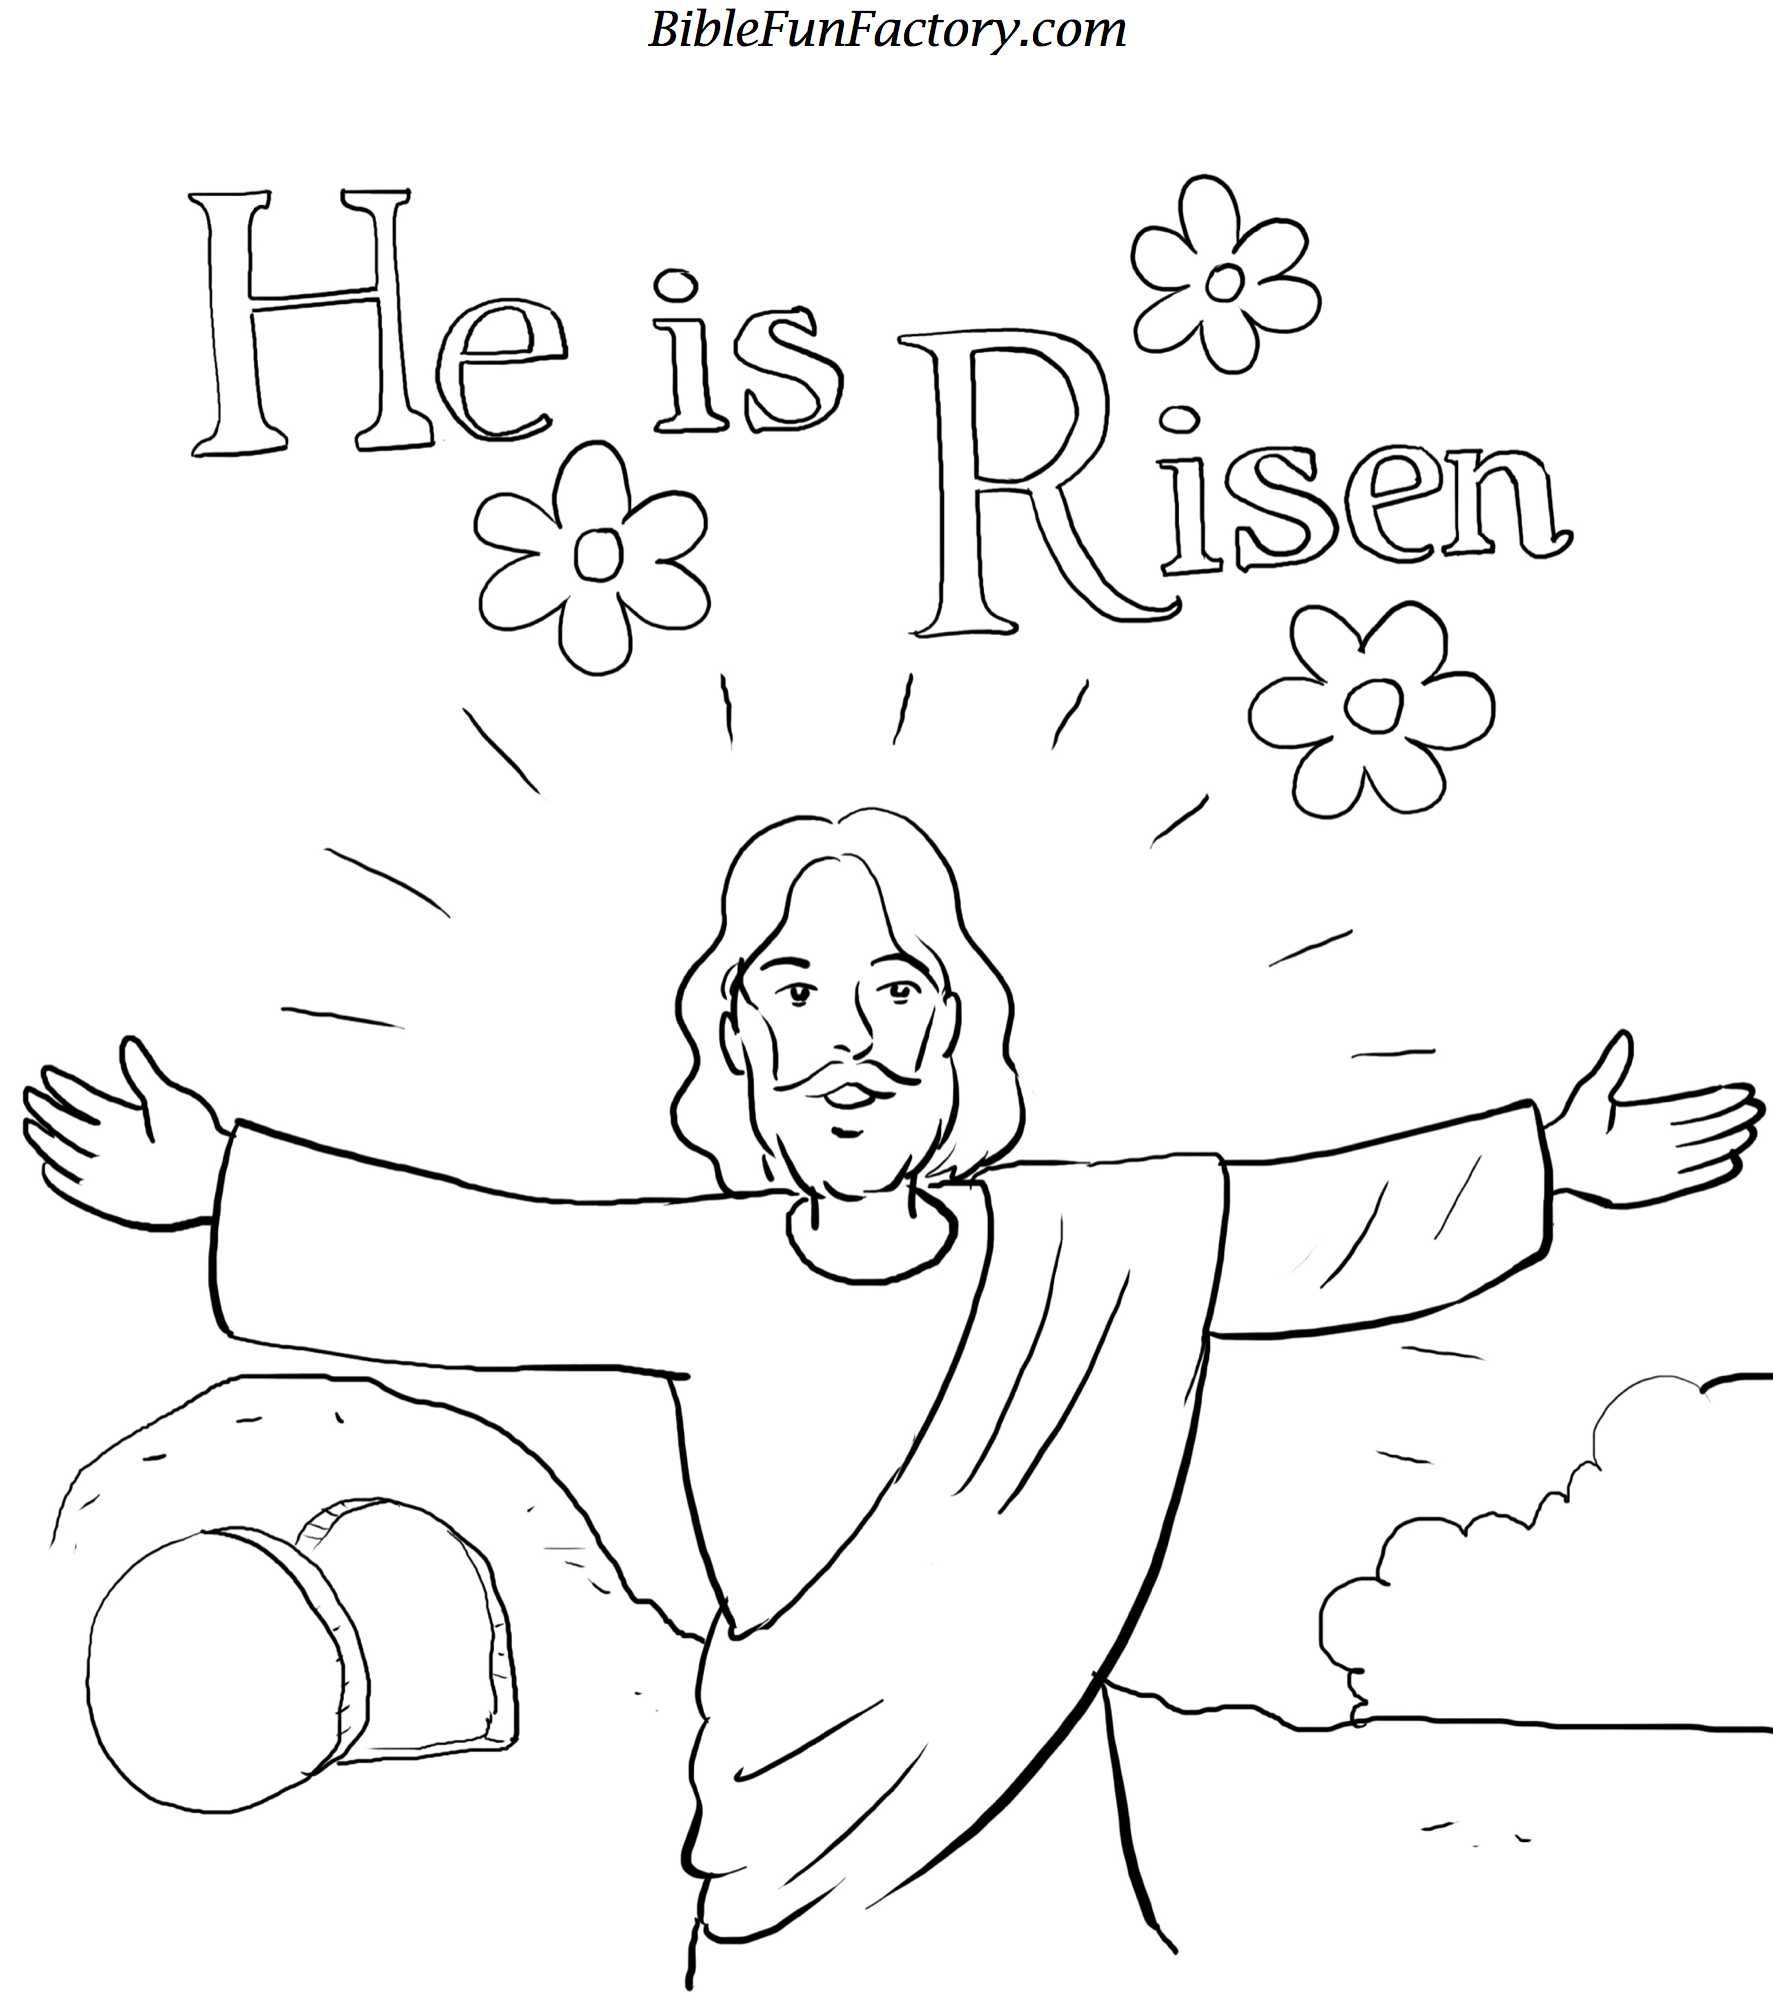 Free coloring pages christian - Resurrection Coloring Pages Free Easter Coloring Sheet